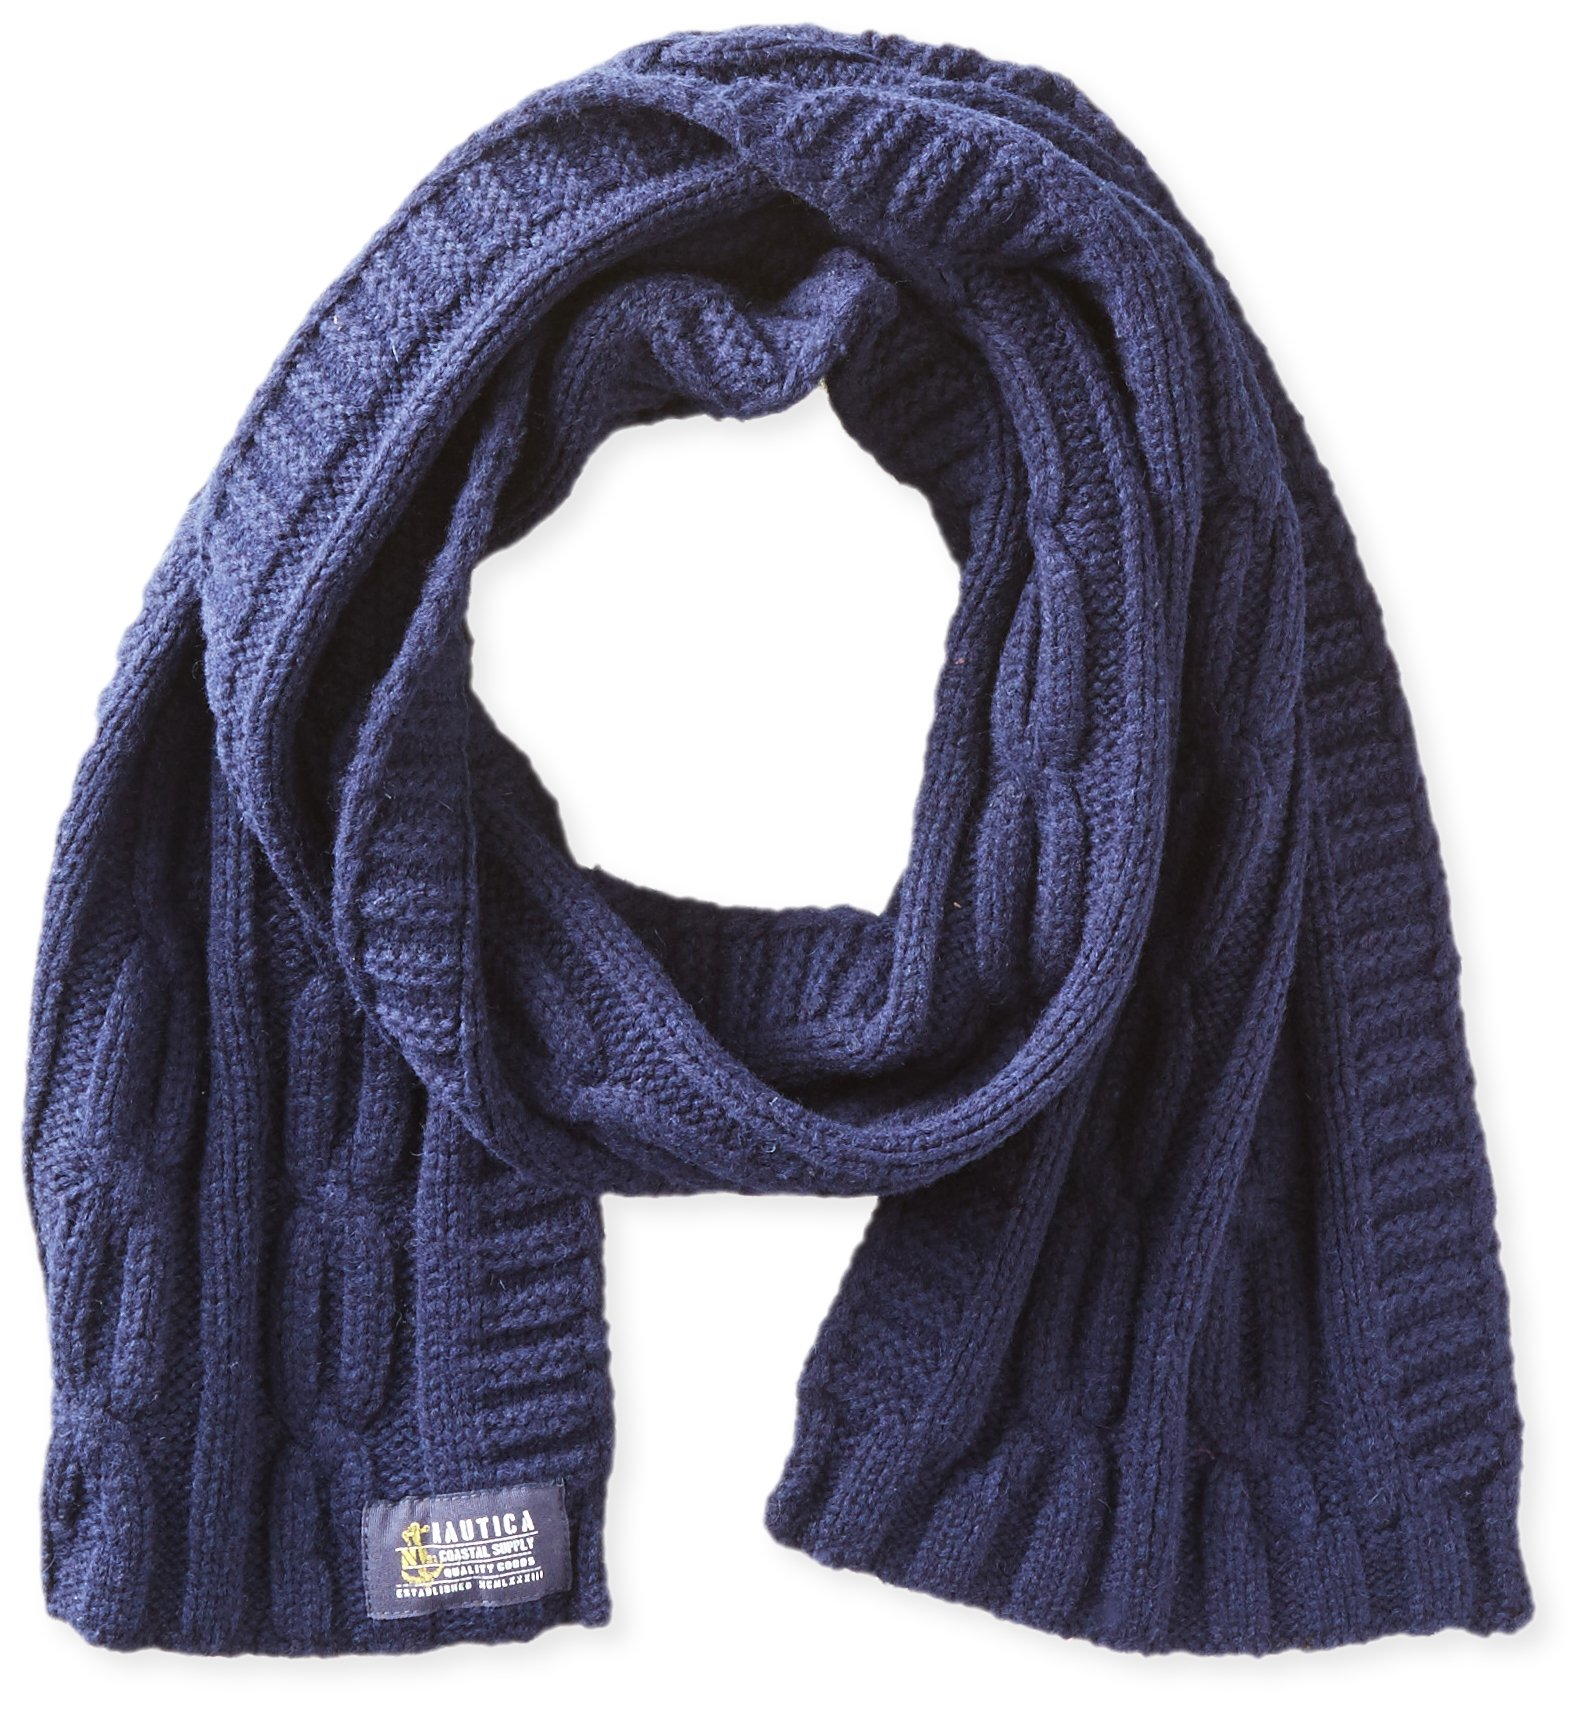 Nautica Men's Solid Cable Scarf, Peacoat, One Size